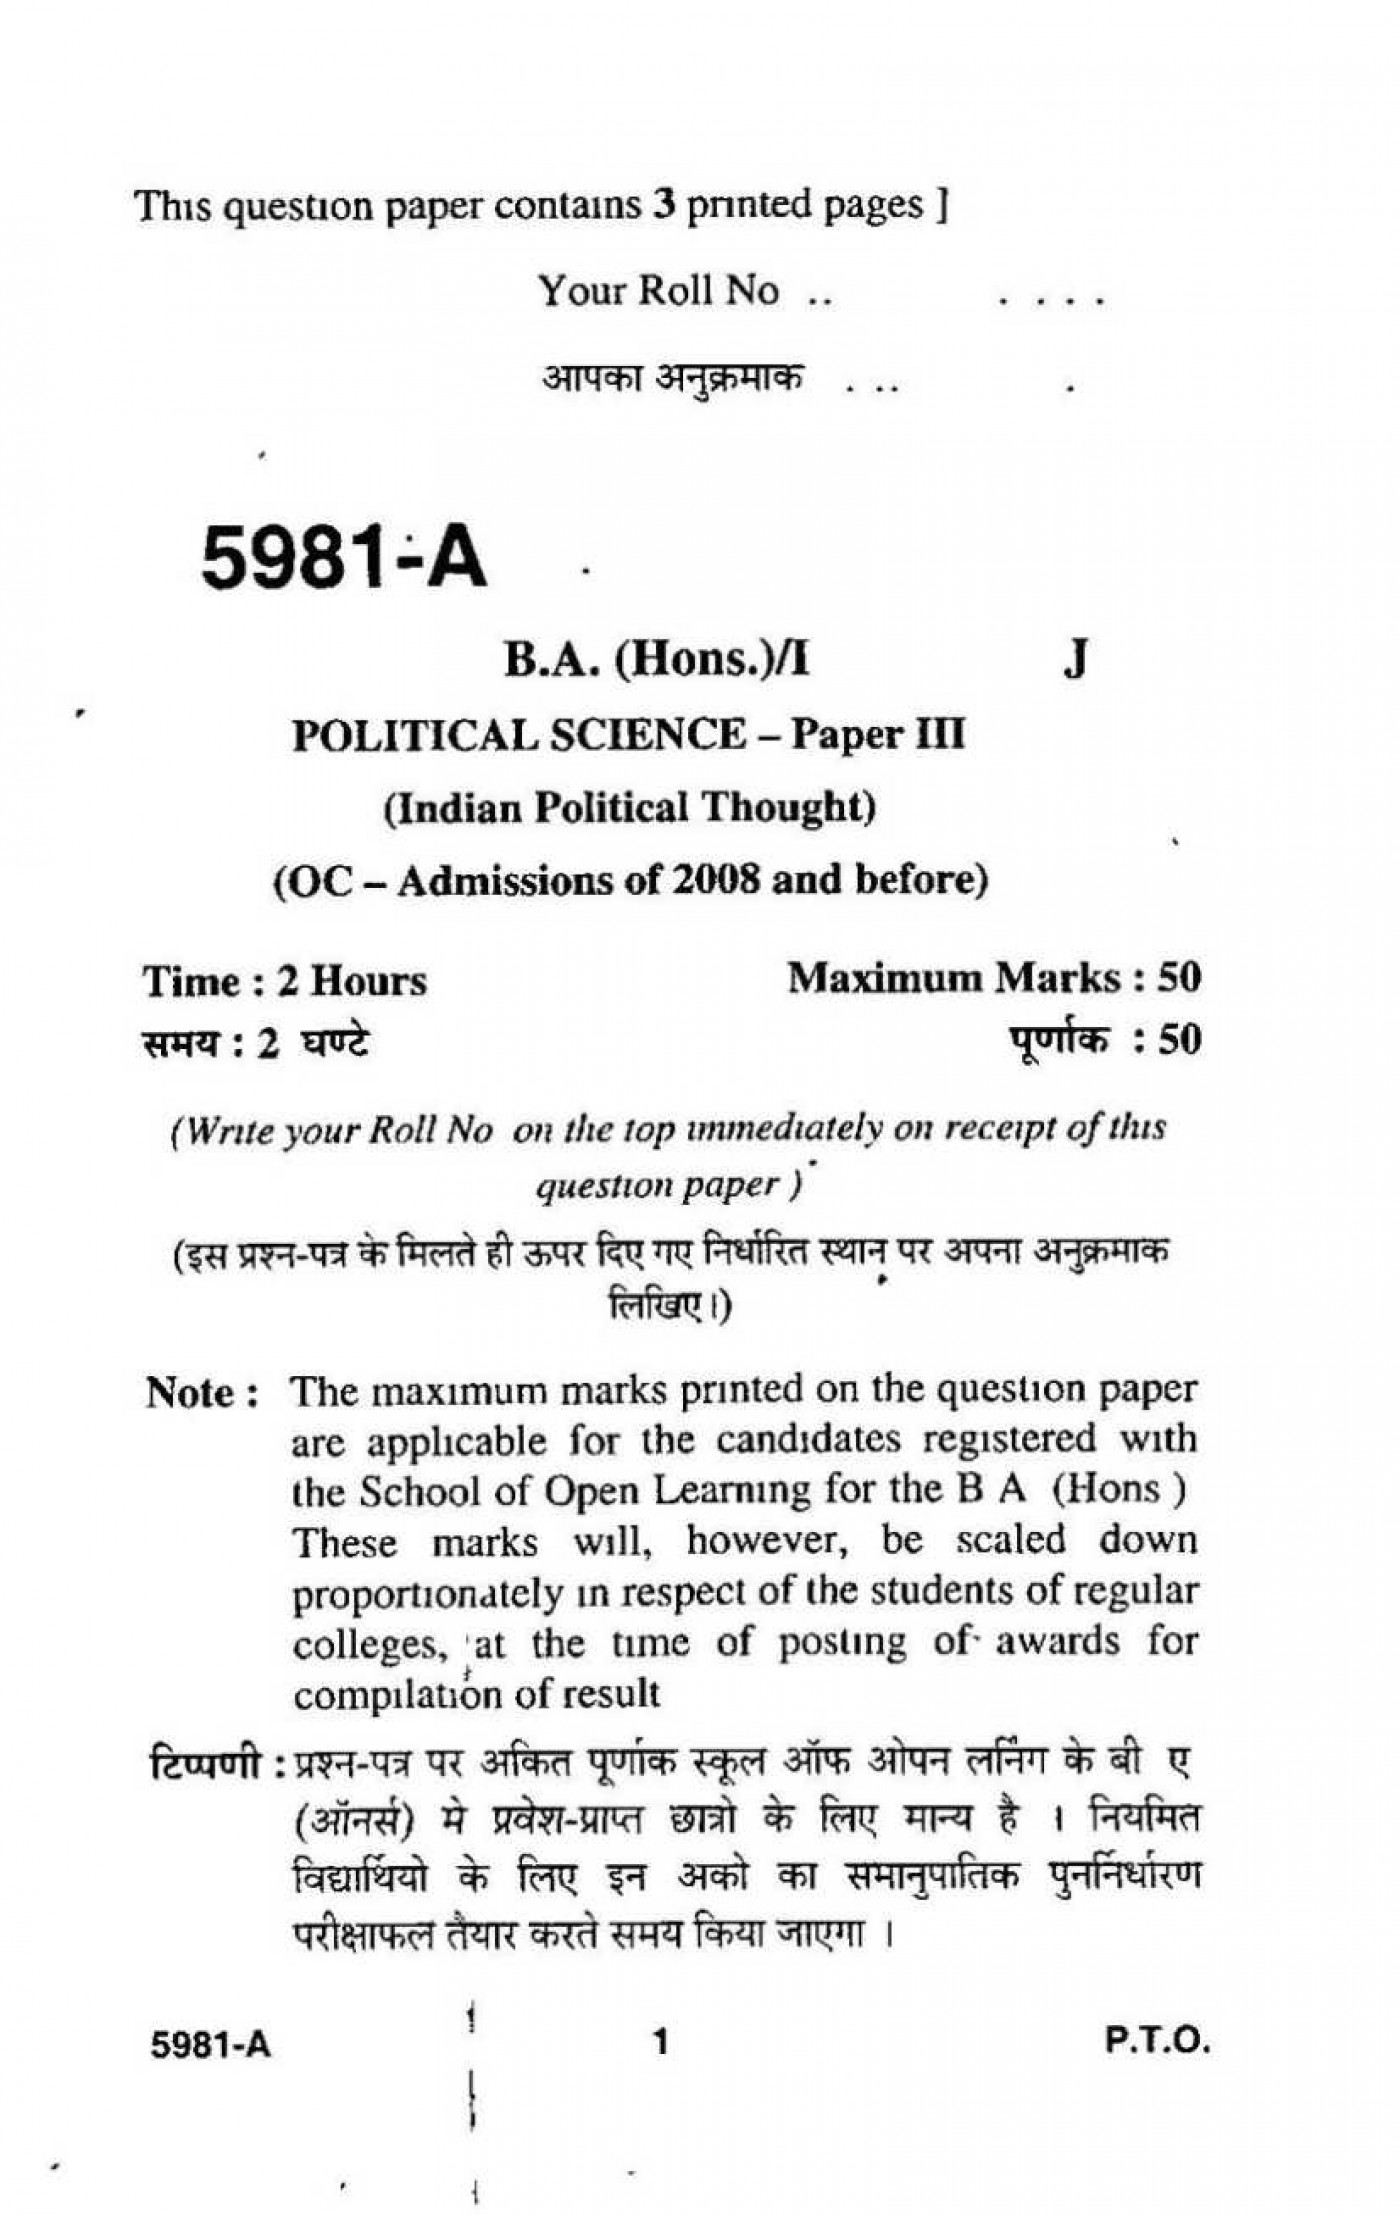 014 Political Science Research Essay Topics Paper Delhi University H First Year Previous Years Question Archaicawful 2014 101 1400